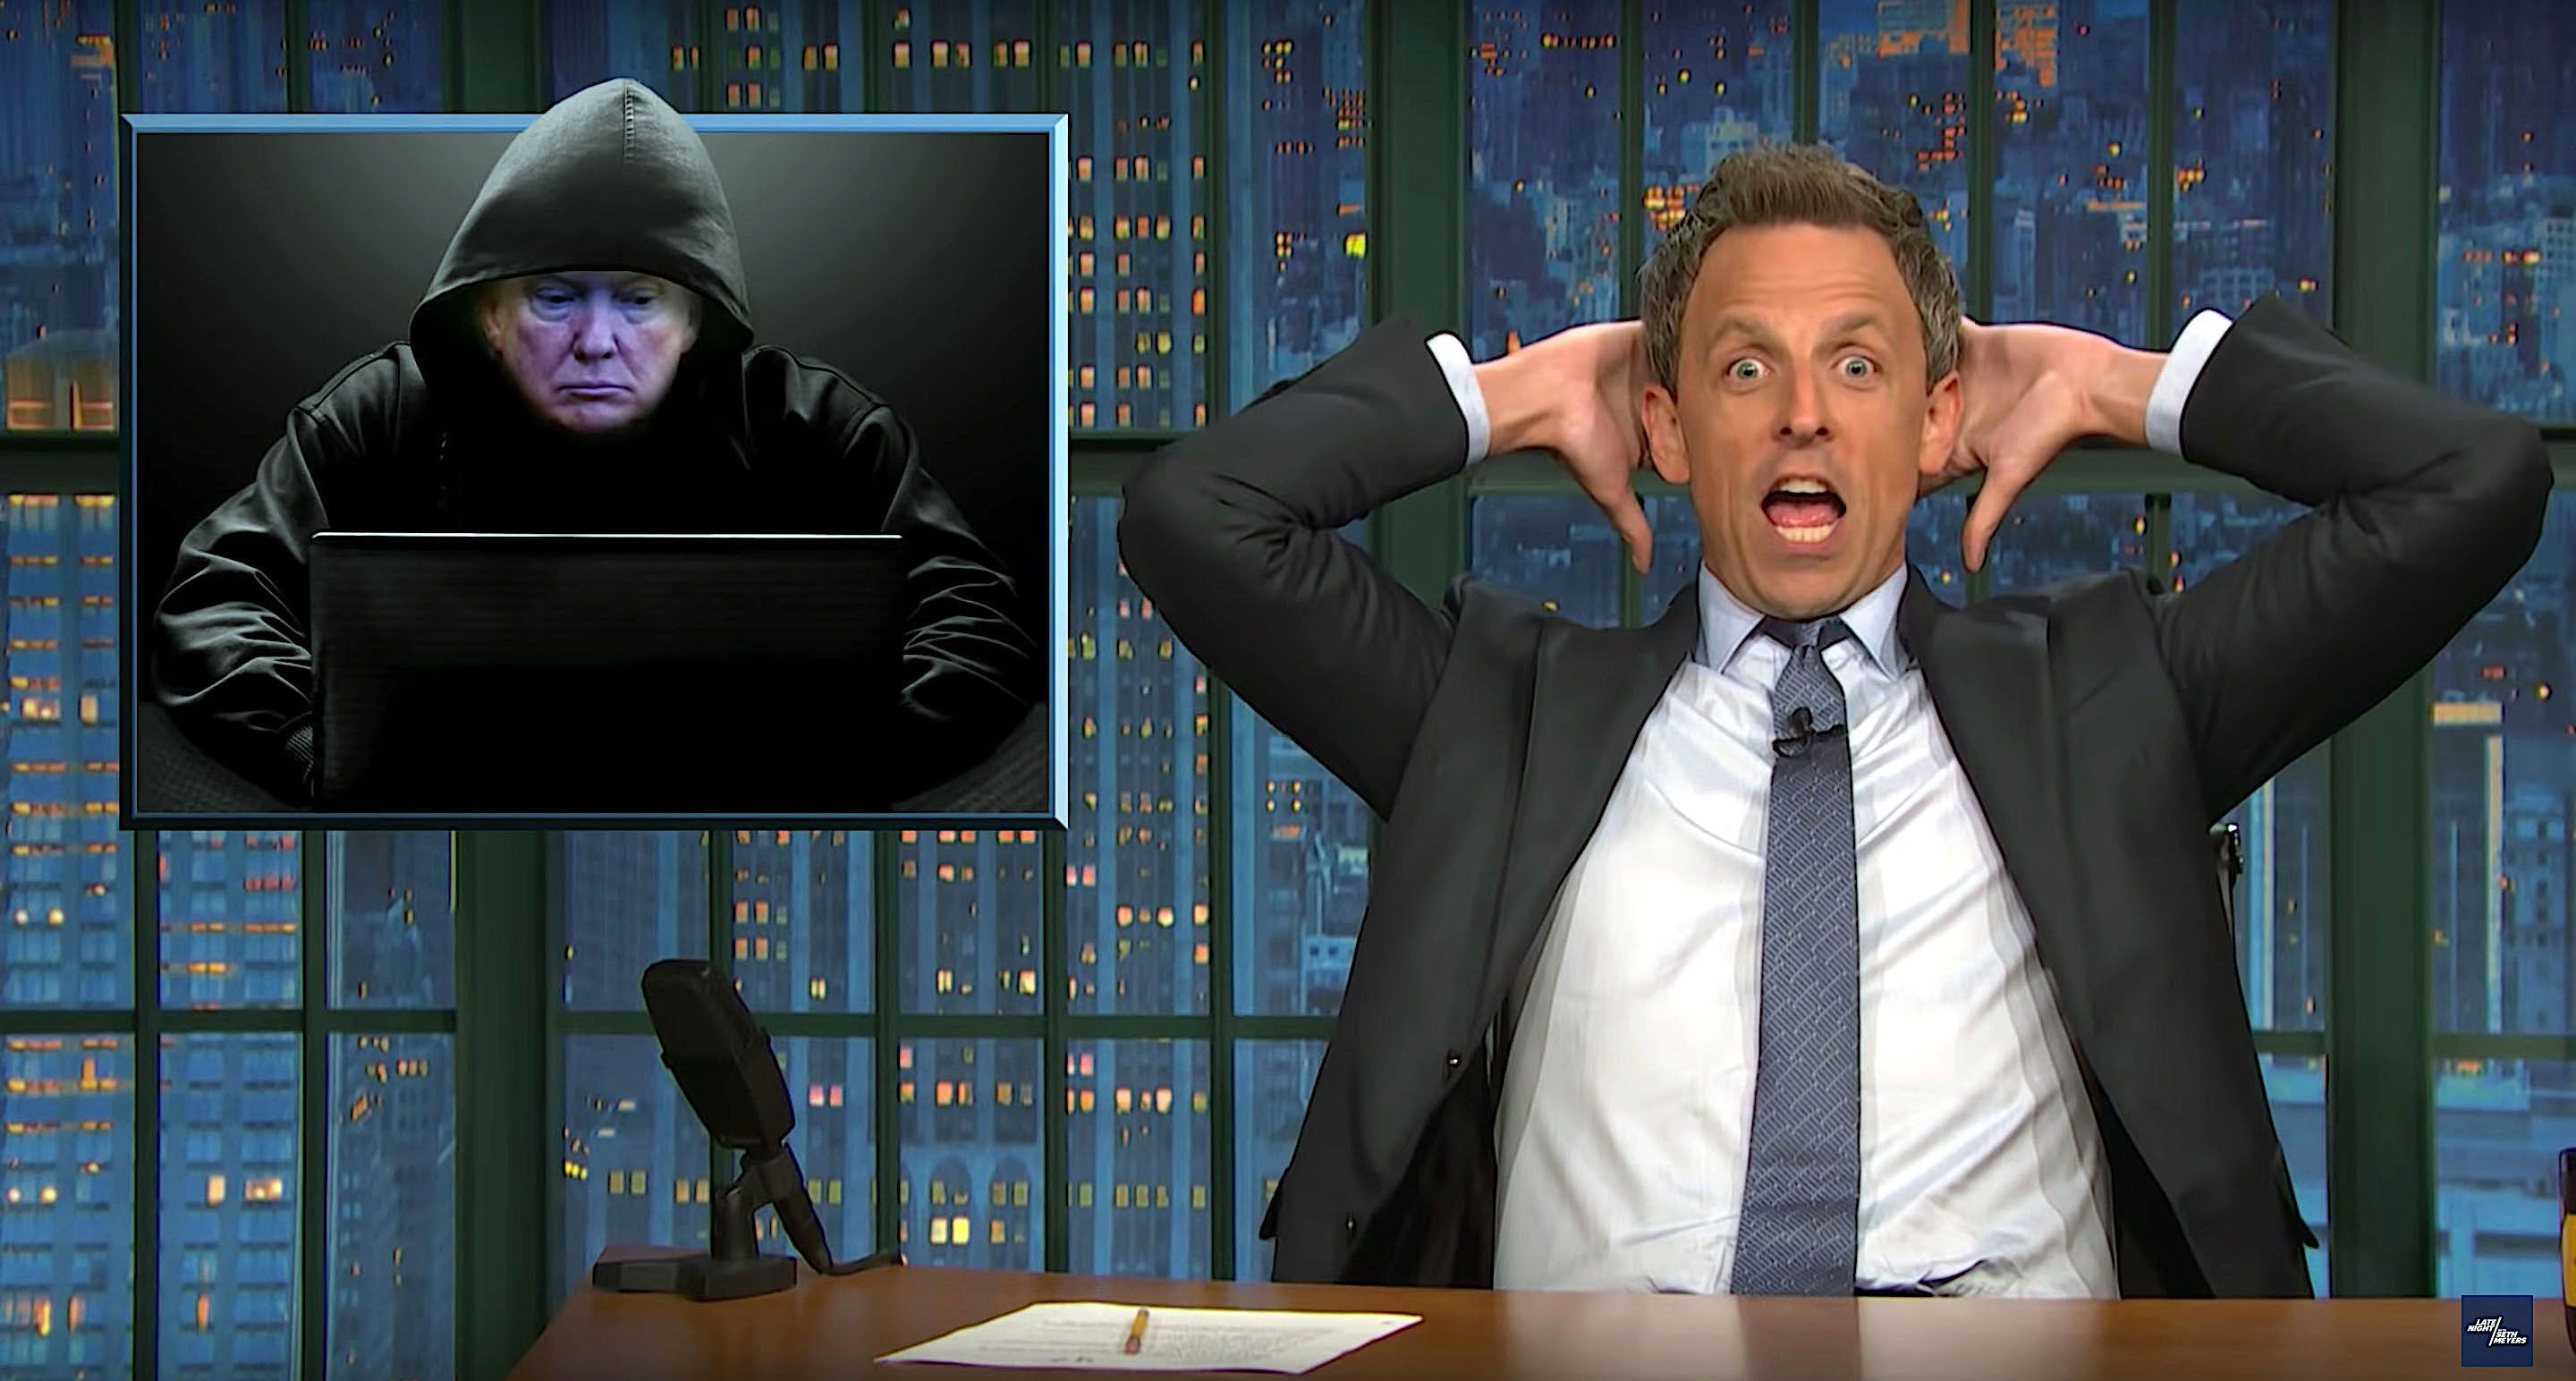 Seth Meyers of Late Night imagines President Donald Trump as a hacker